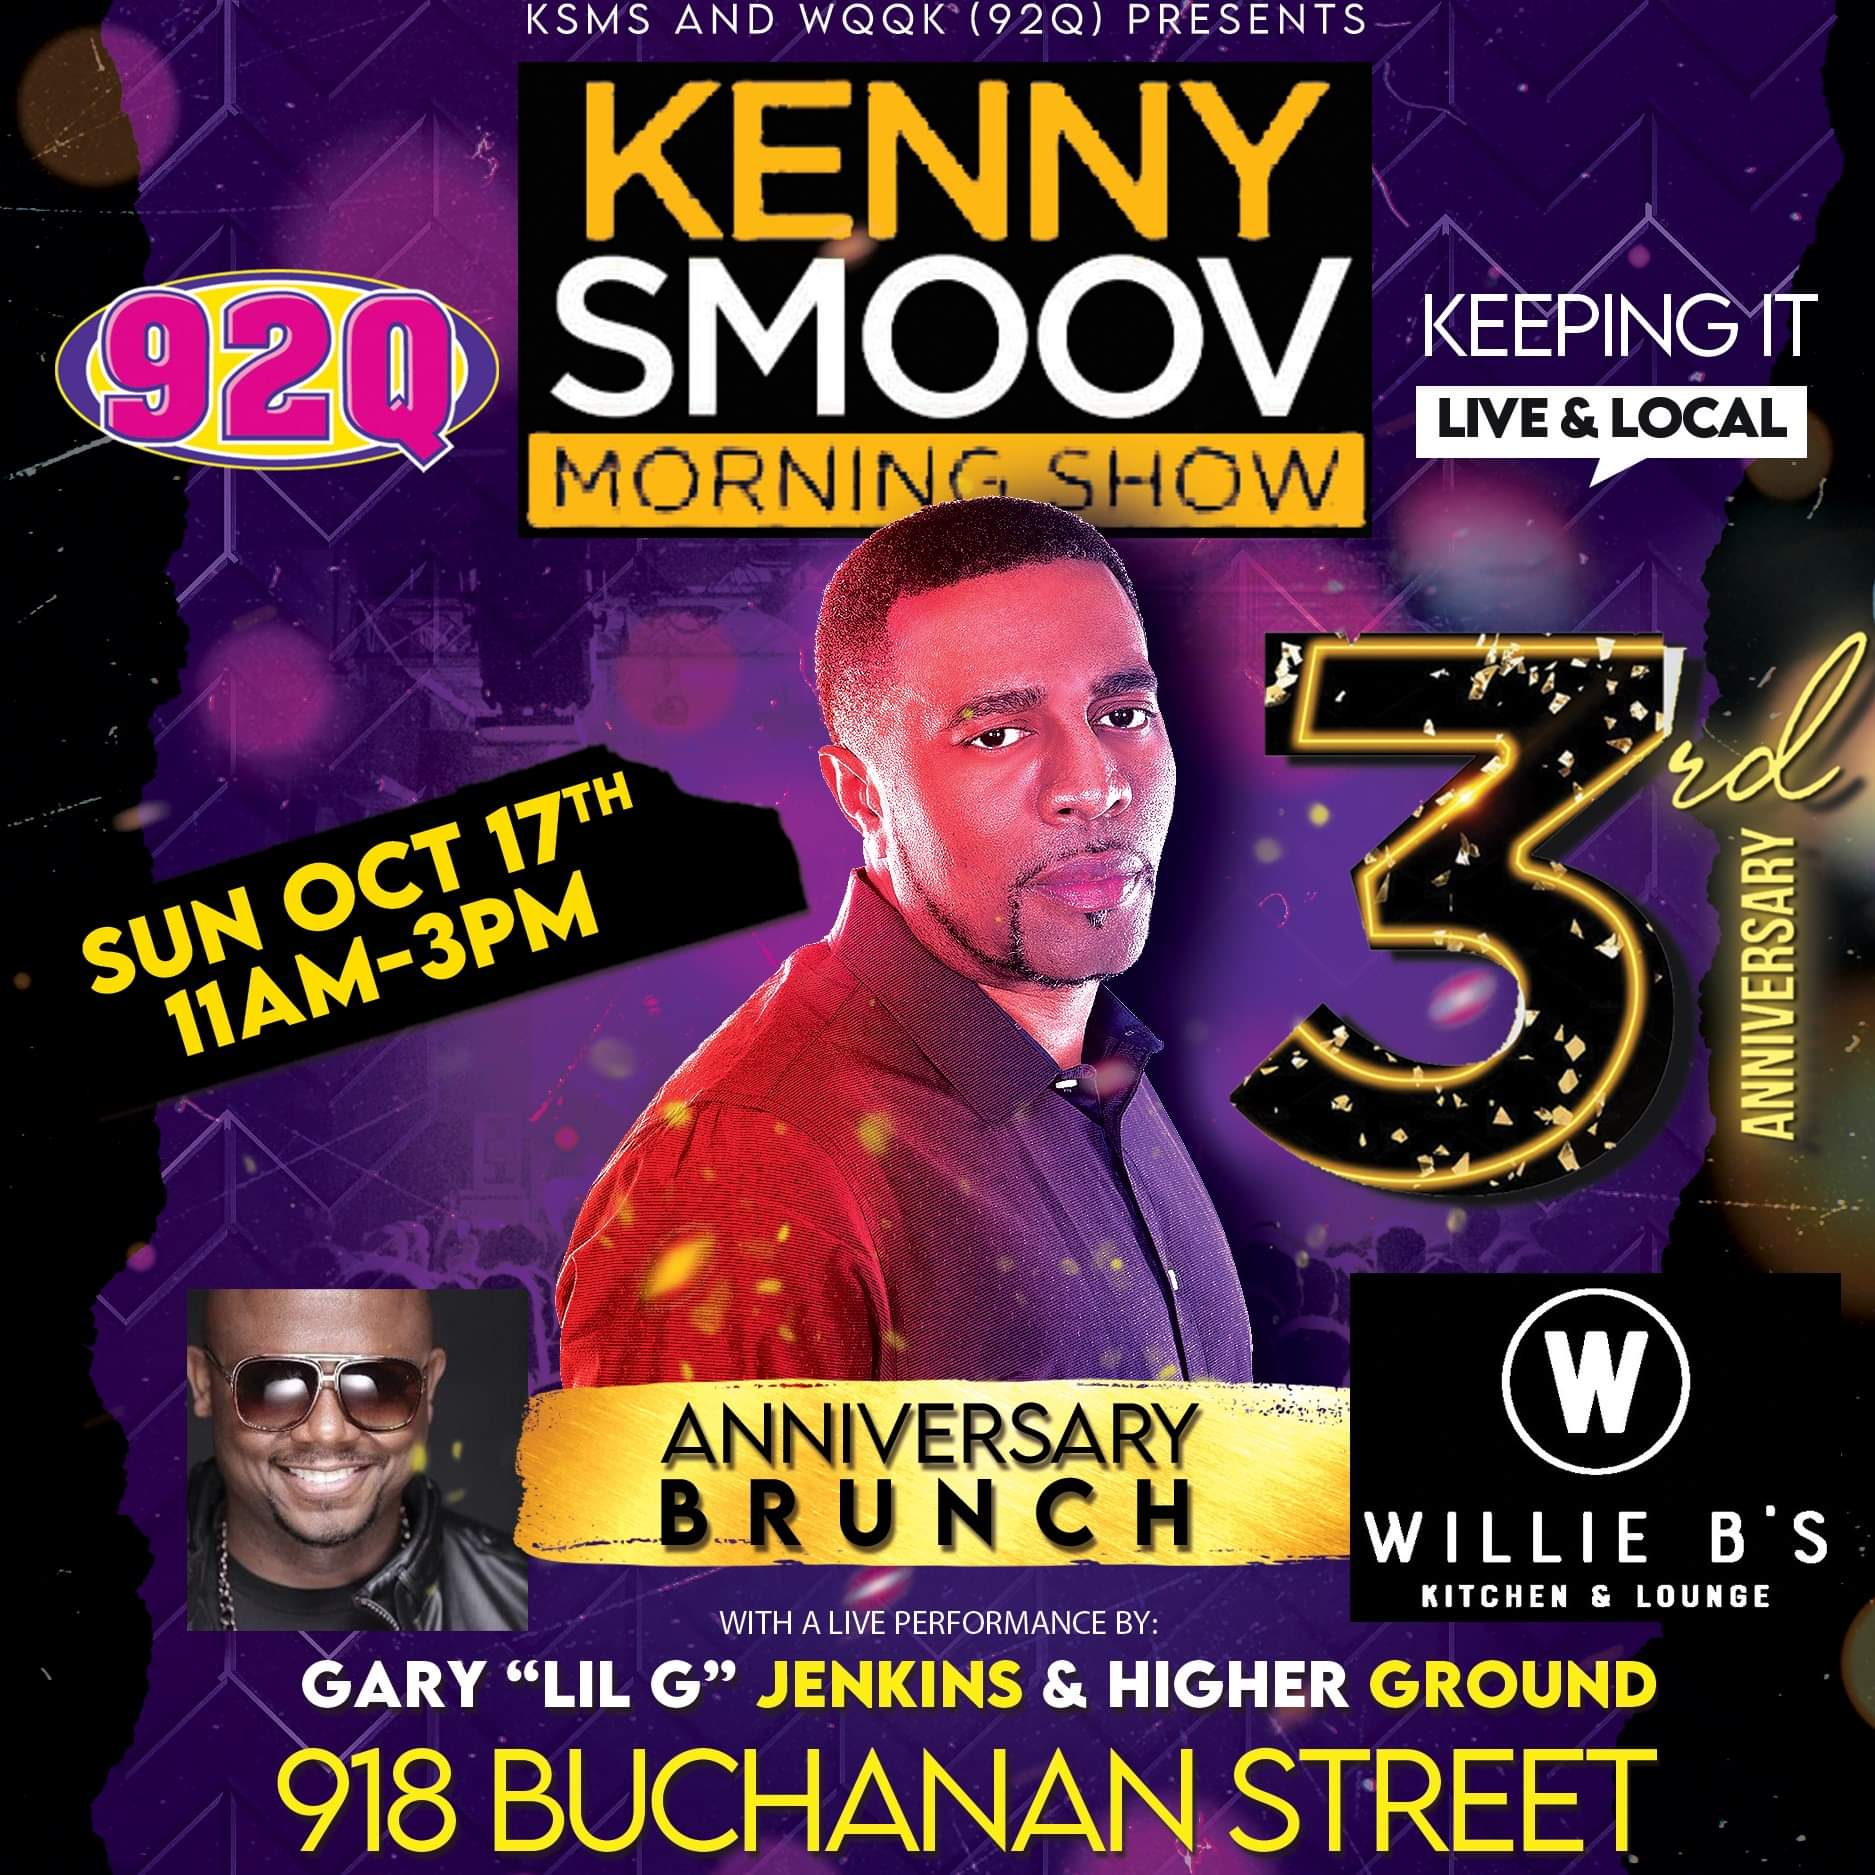 Come Have Brunch on Sunday with The Kenny Smoov Morning Show crew at Willie B's!